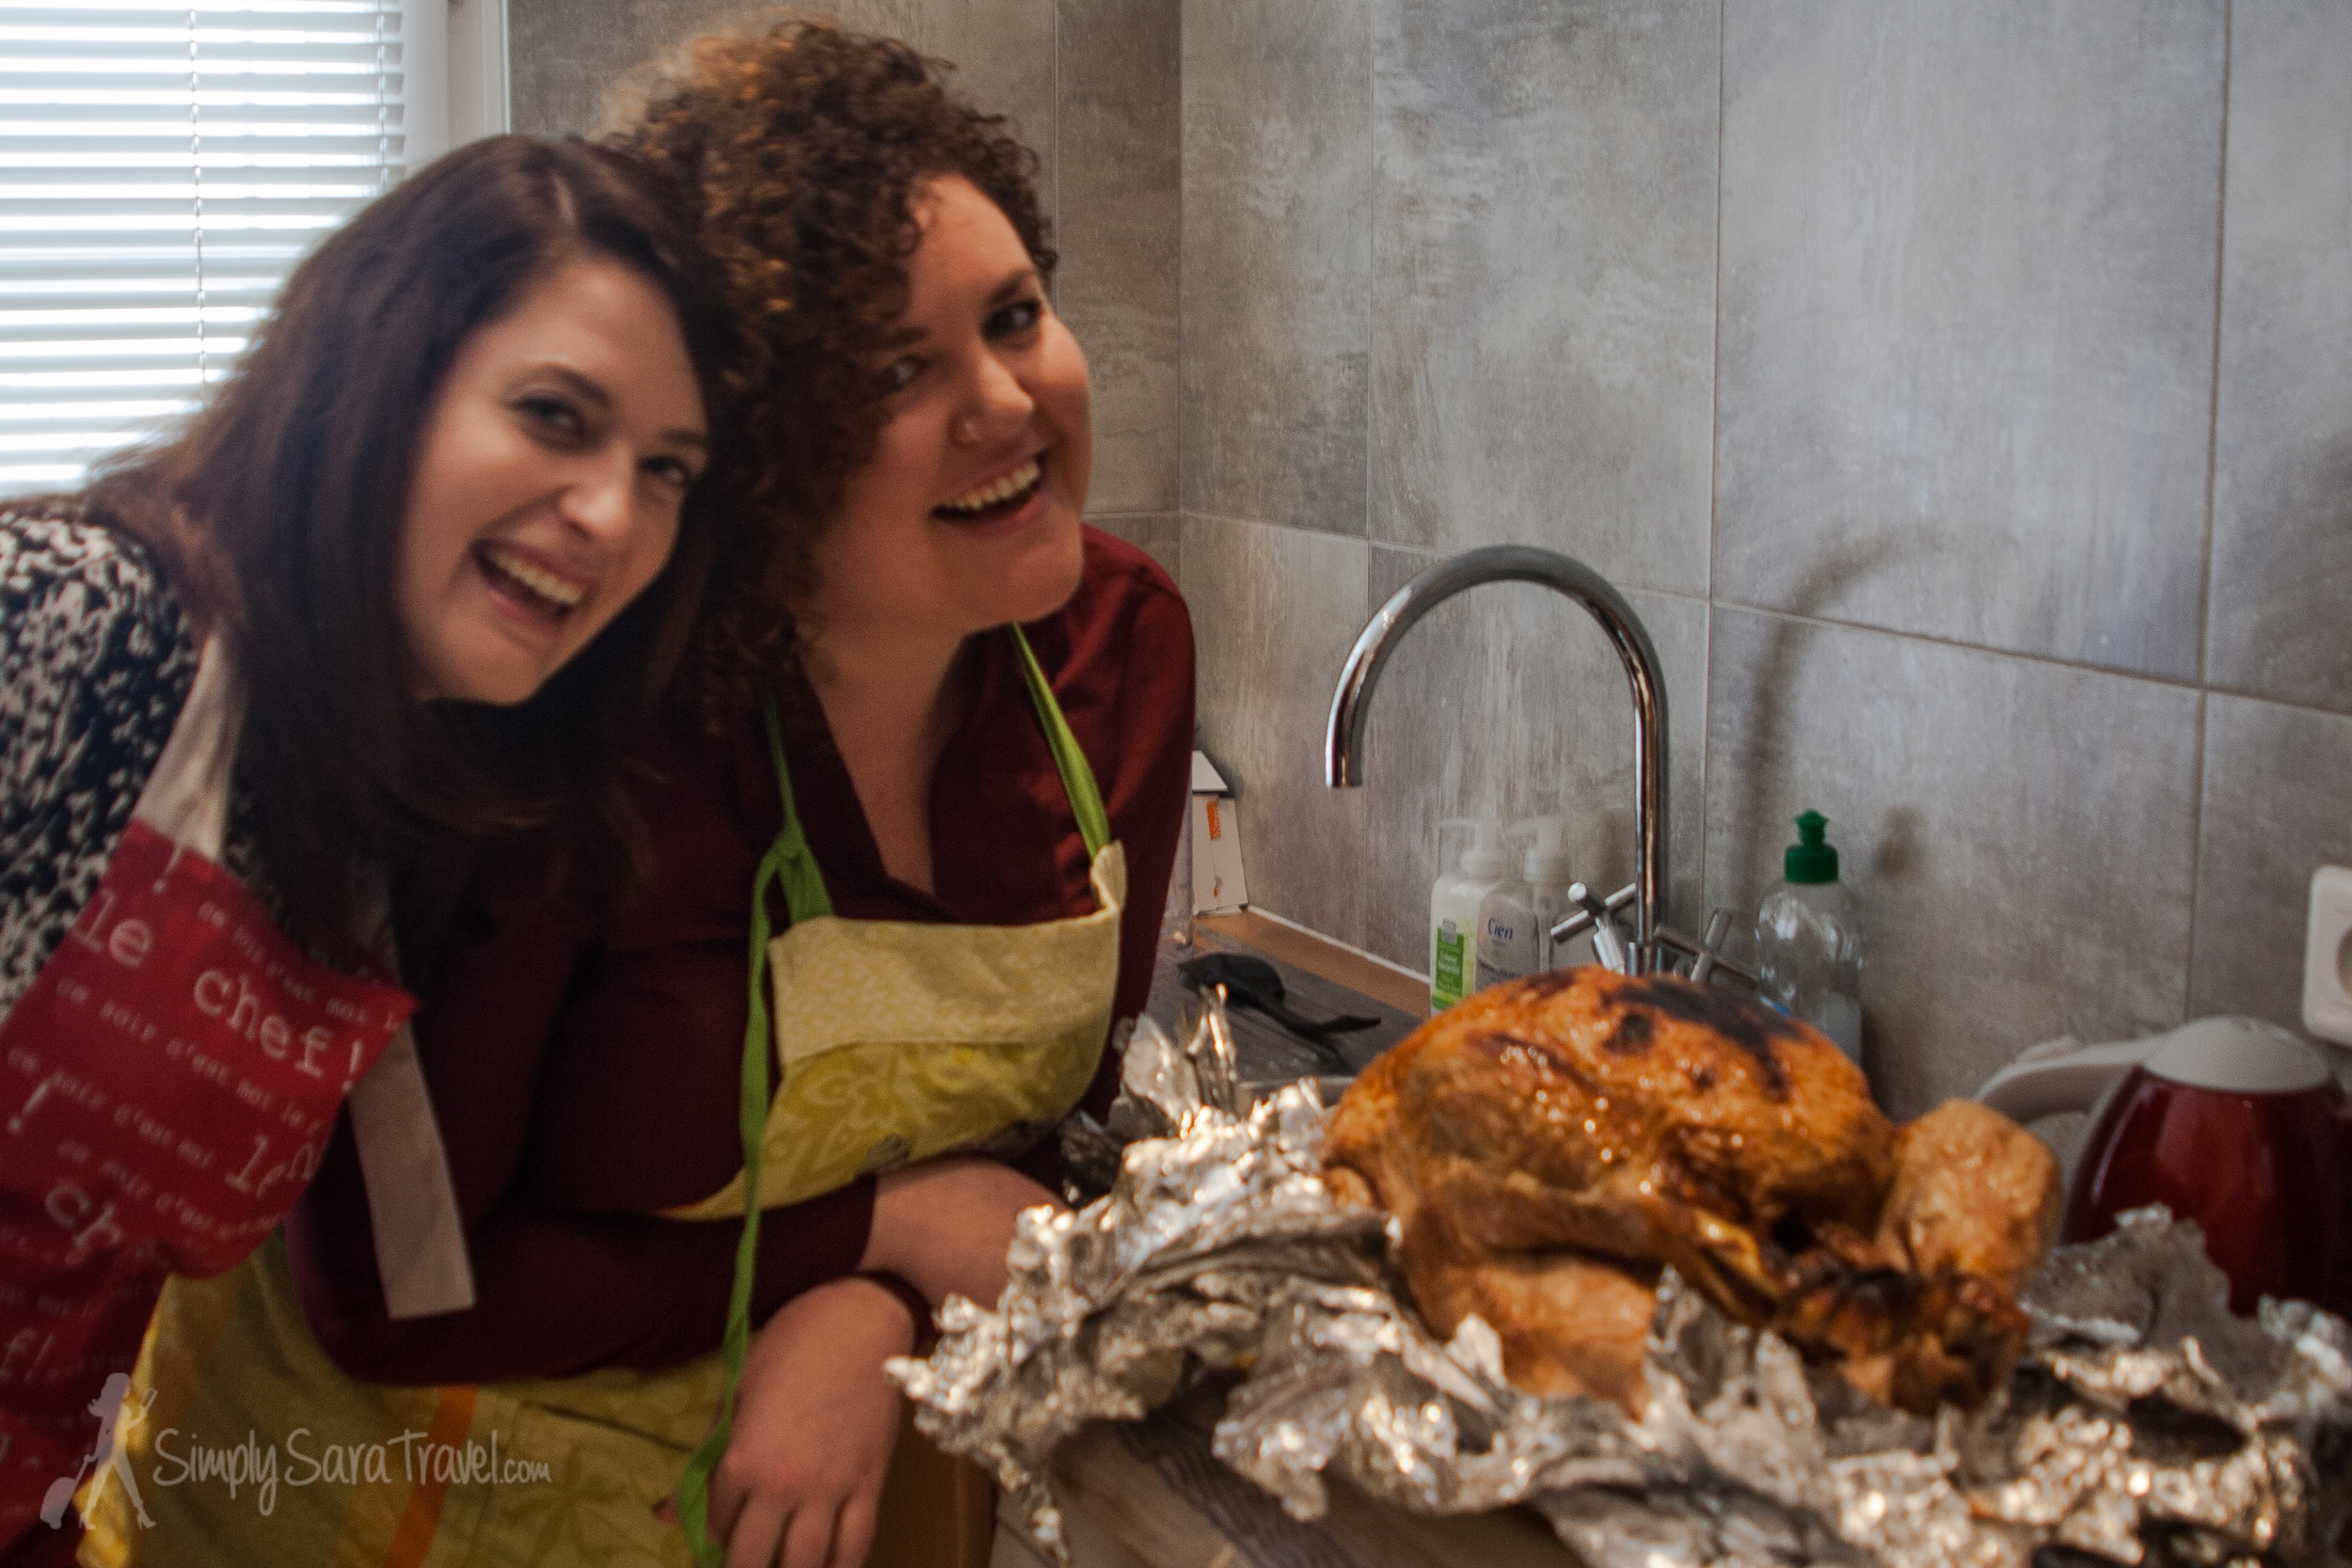 """Kerri made not one but two turkeys in her oven last year - and they came out fabulous! That's another badge of """"adulthood"""" I have yet to acquire - cooking a bird of that size myself!"""